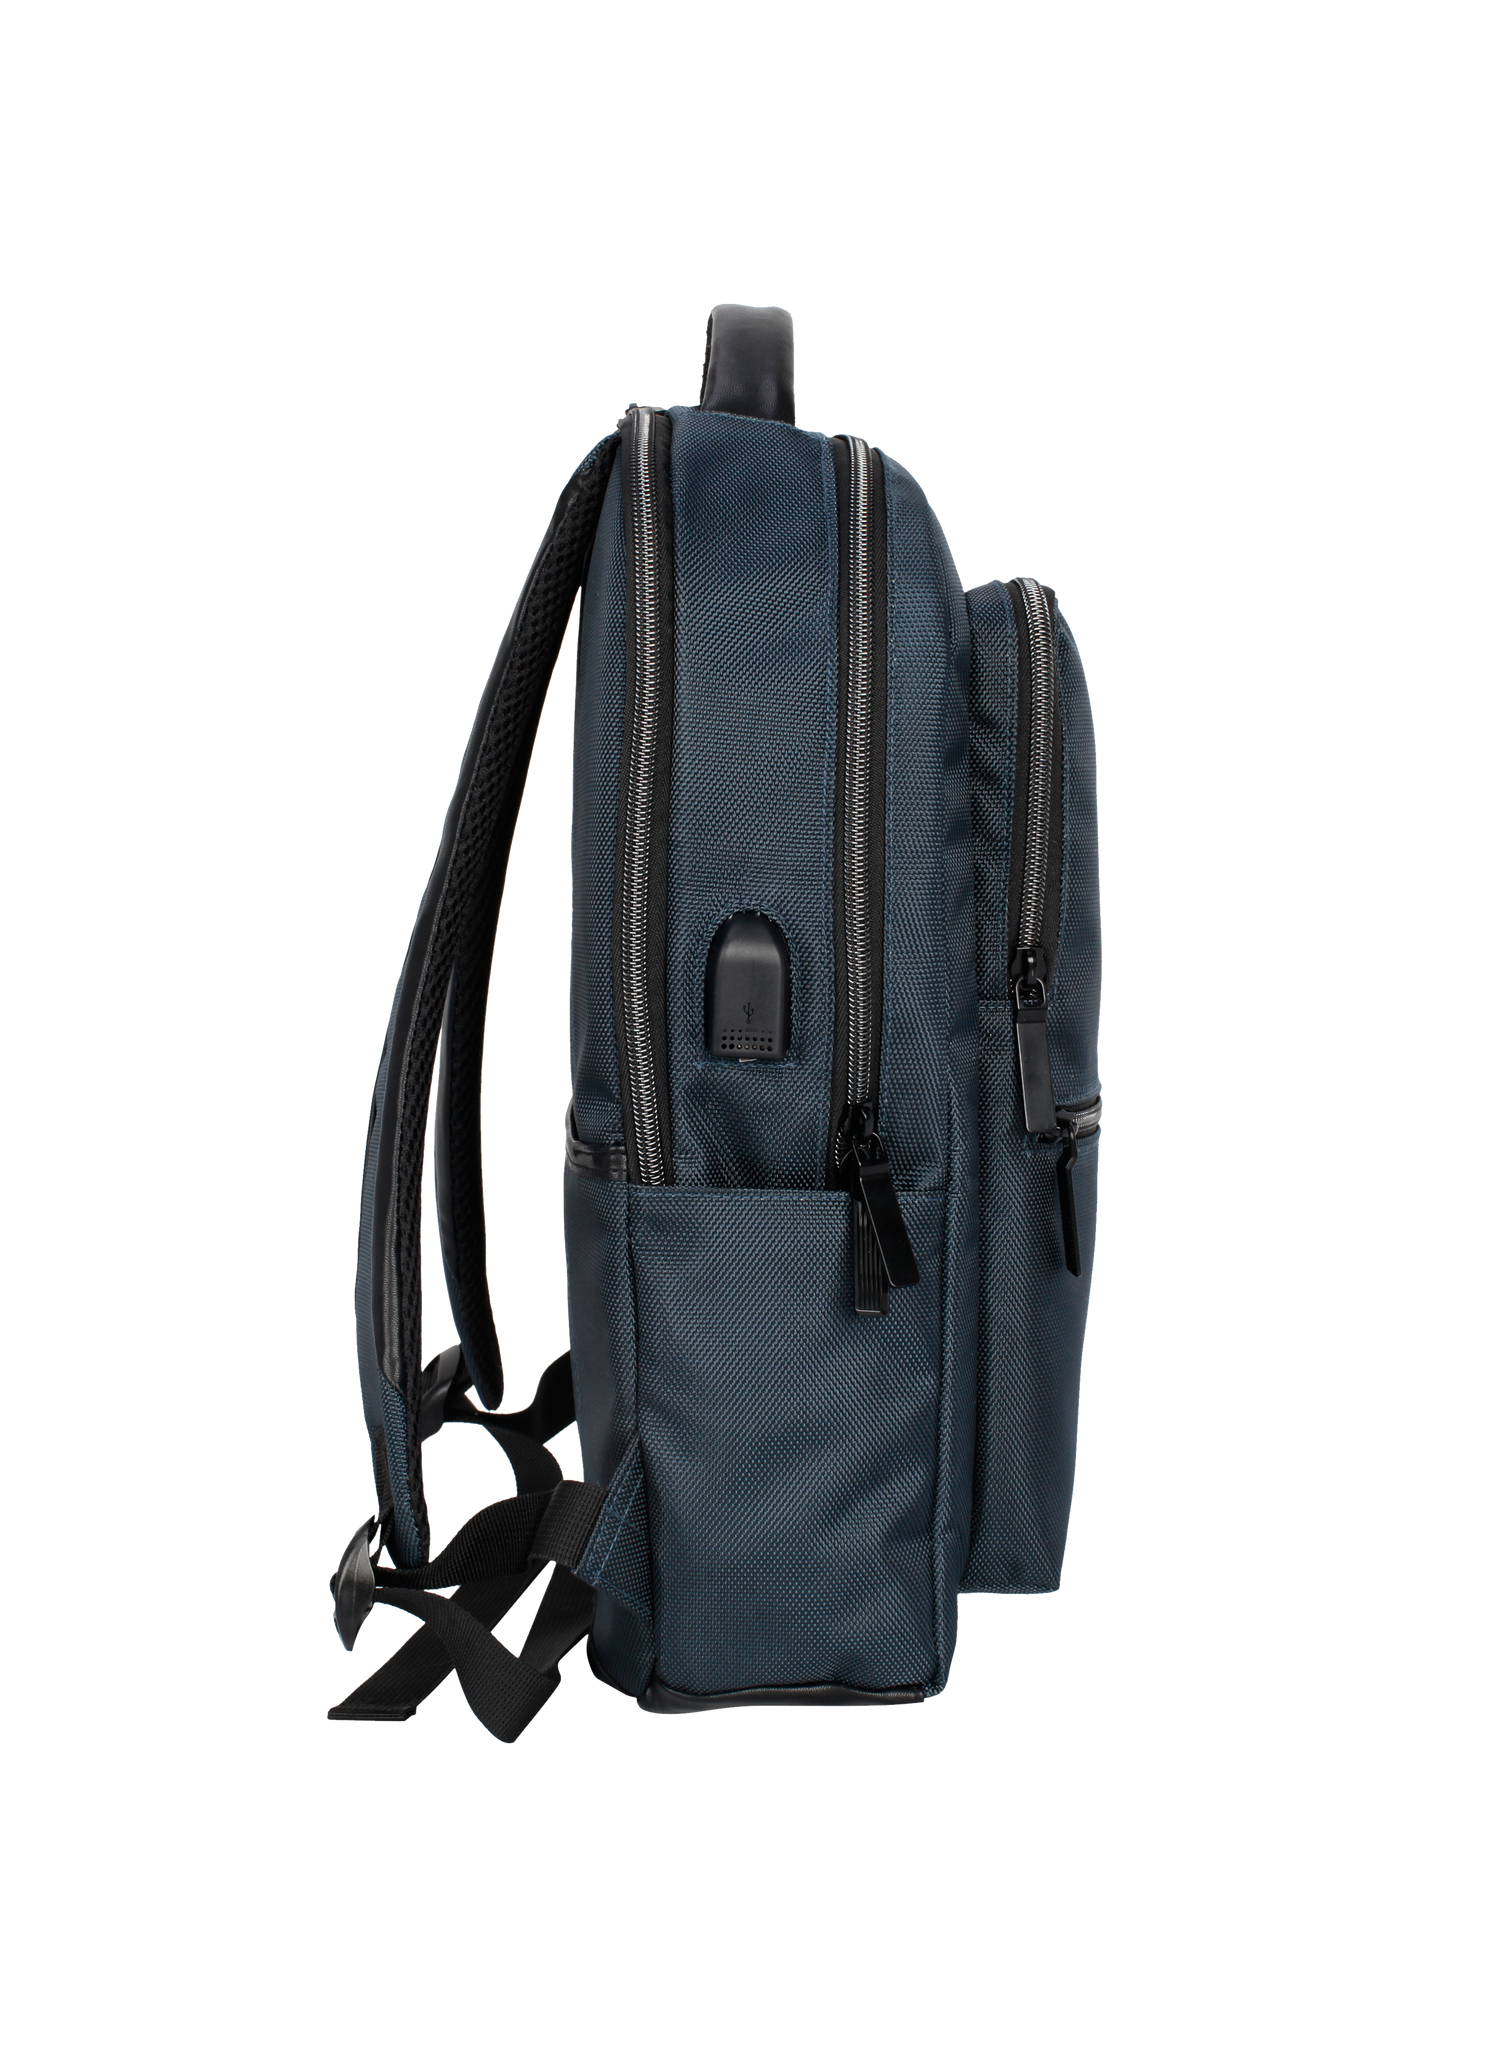 Revo Windsor Backpack